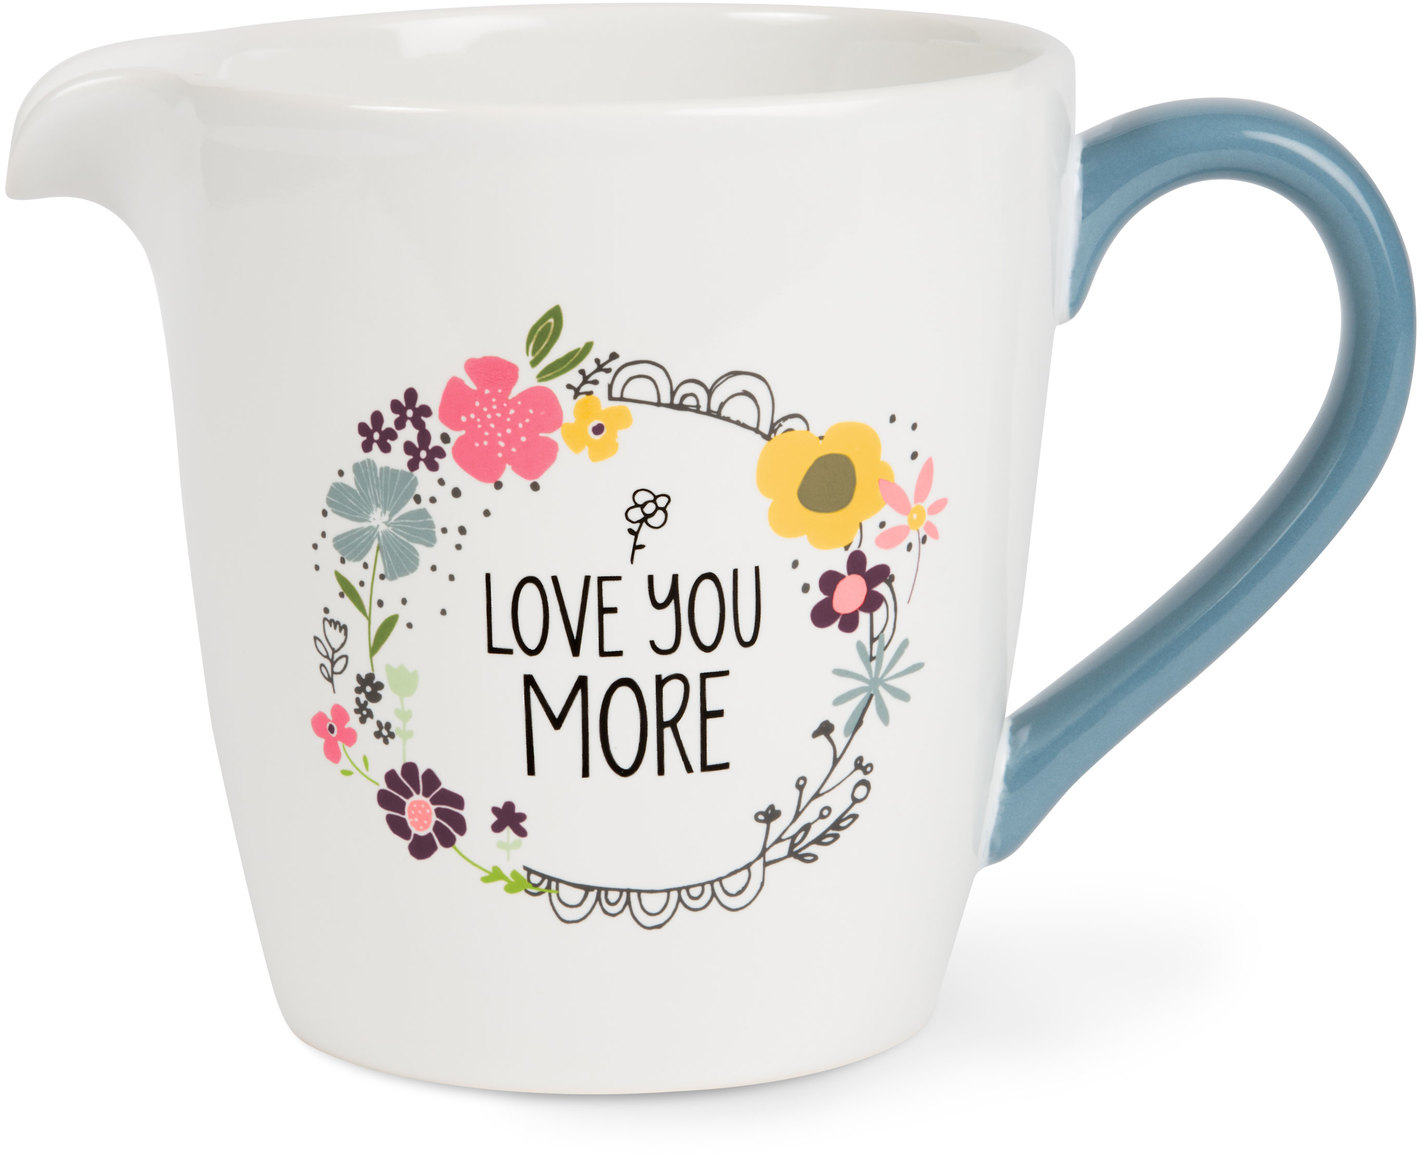 Love You More by Love You More - Love You More - 1 Quart Ceramic Measuring Bowl